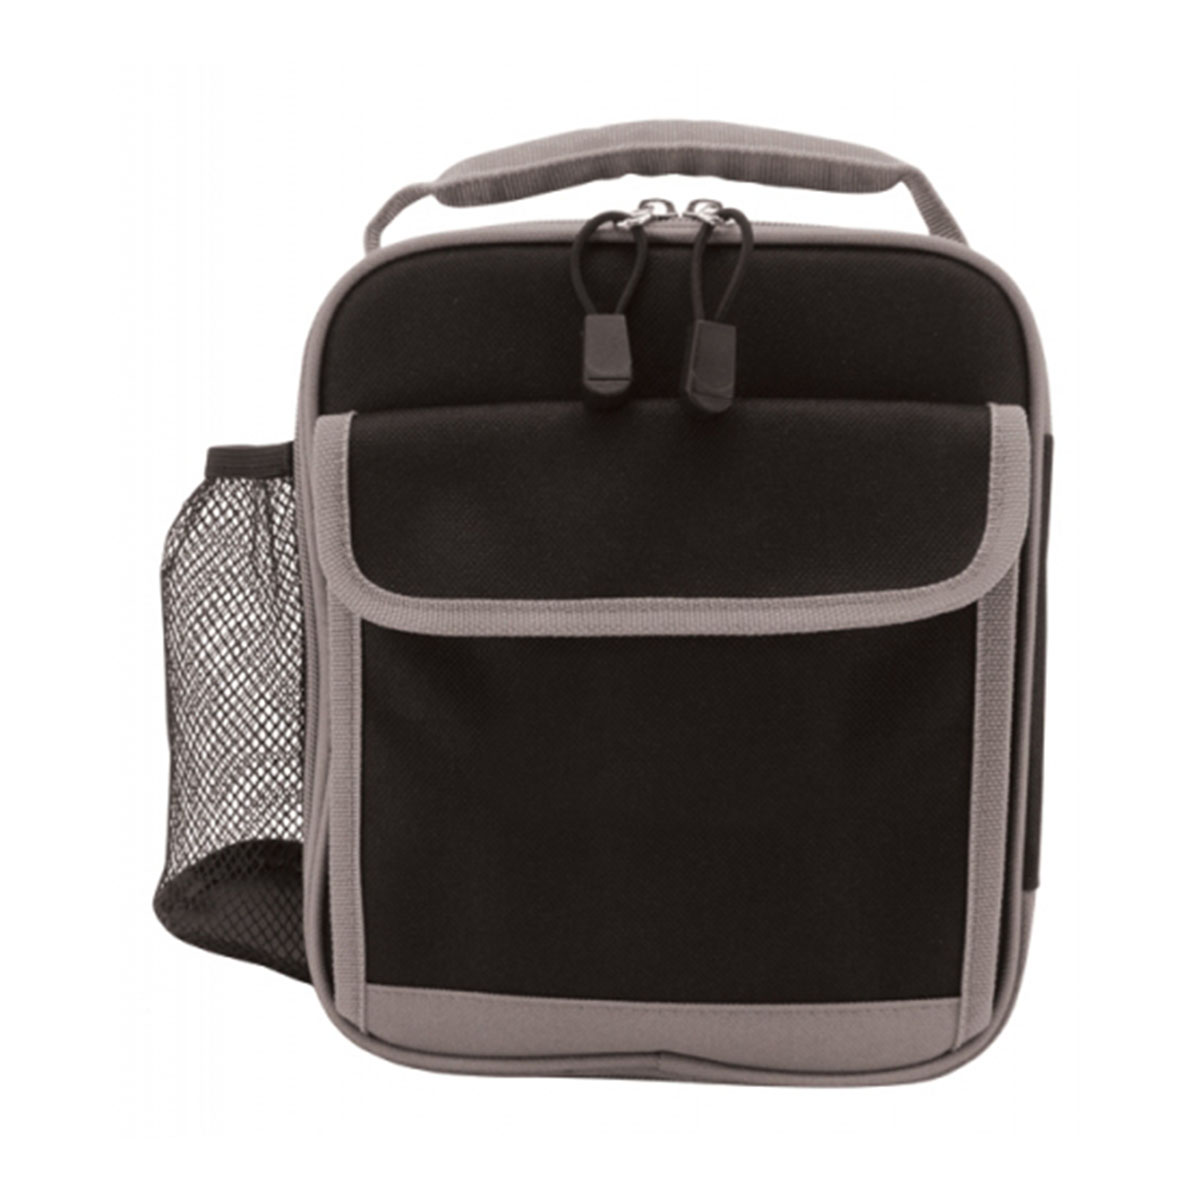 Ivory Cooler Bag-Black / Grey